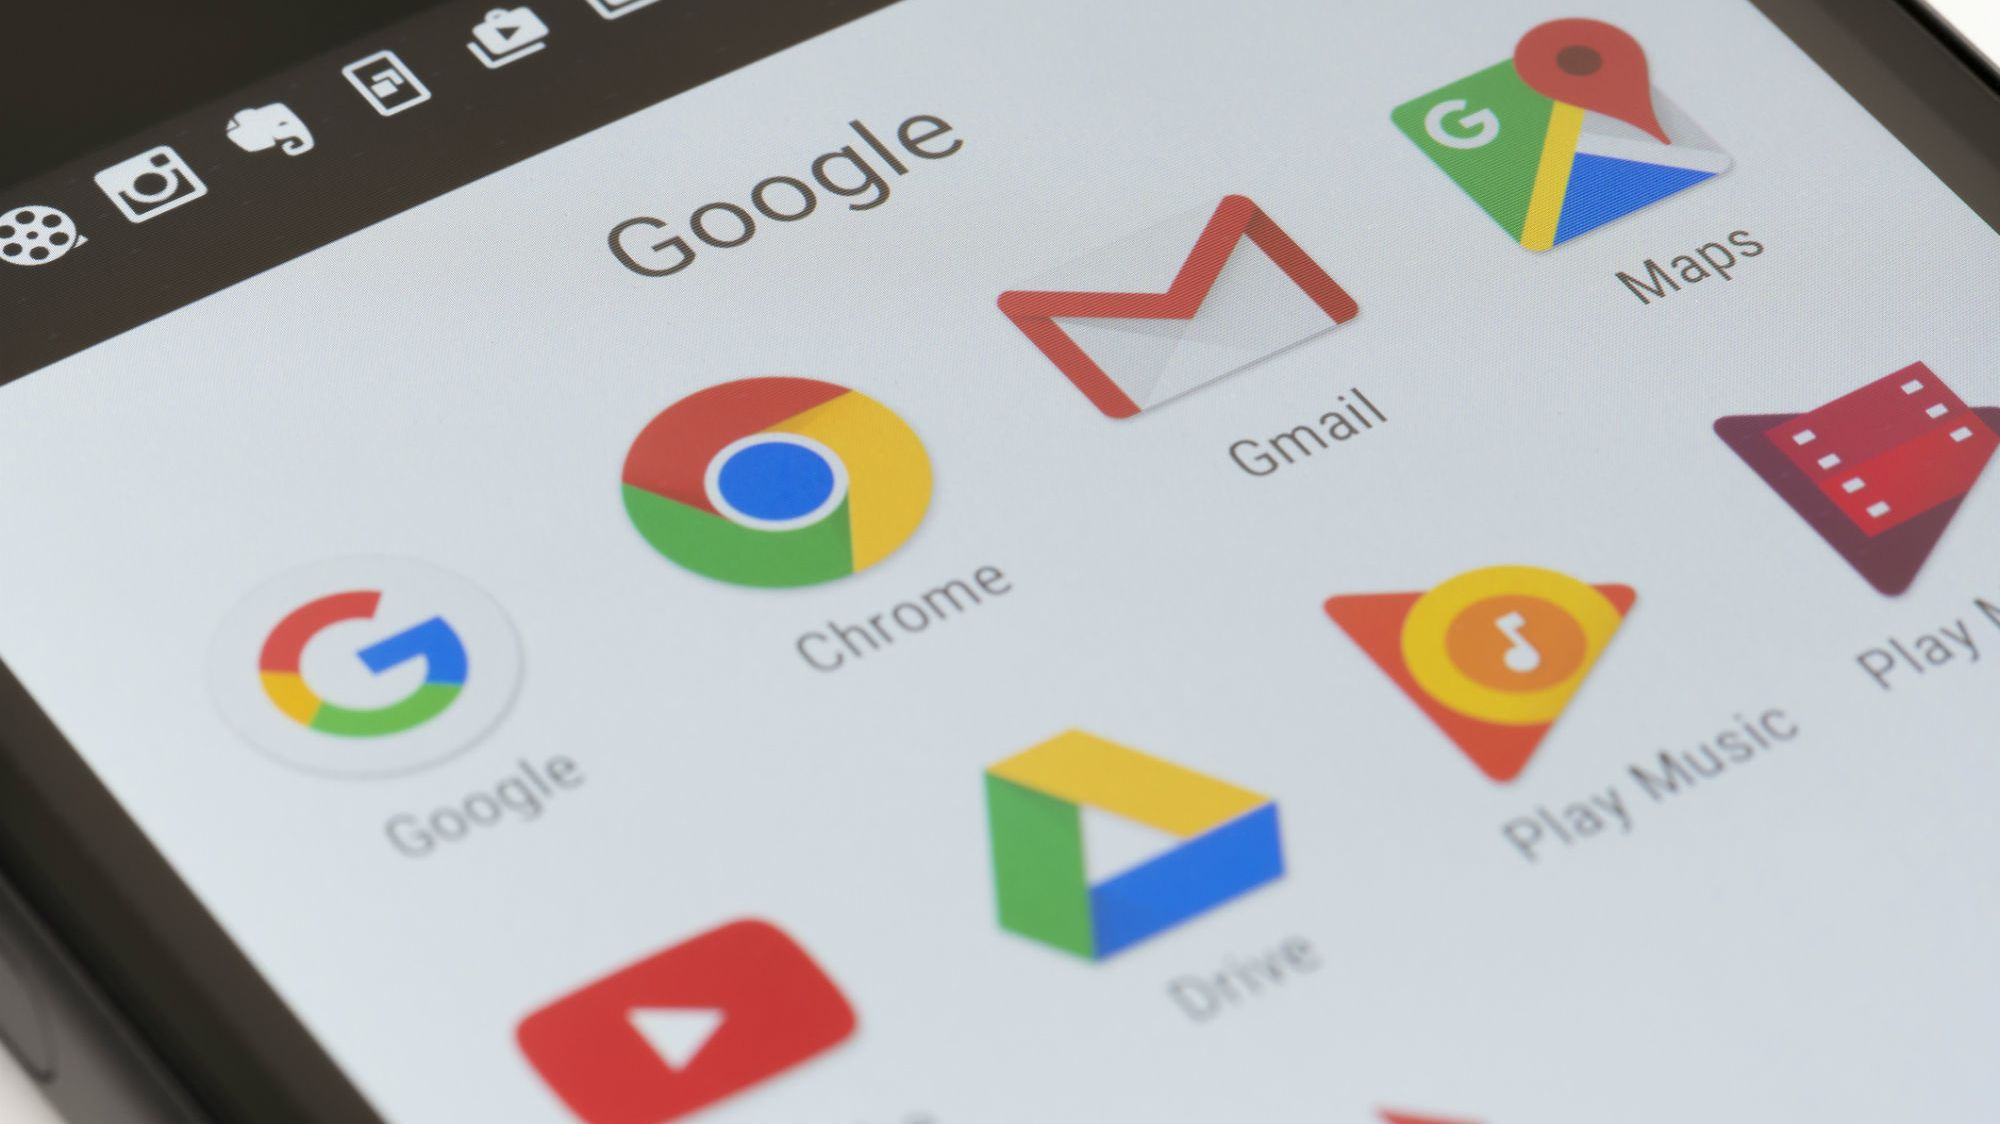 A New Google Chrome Extension Can Make Sure Your Passwords